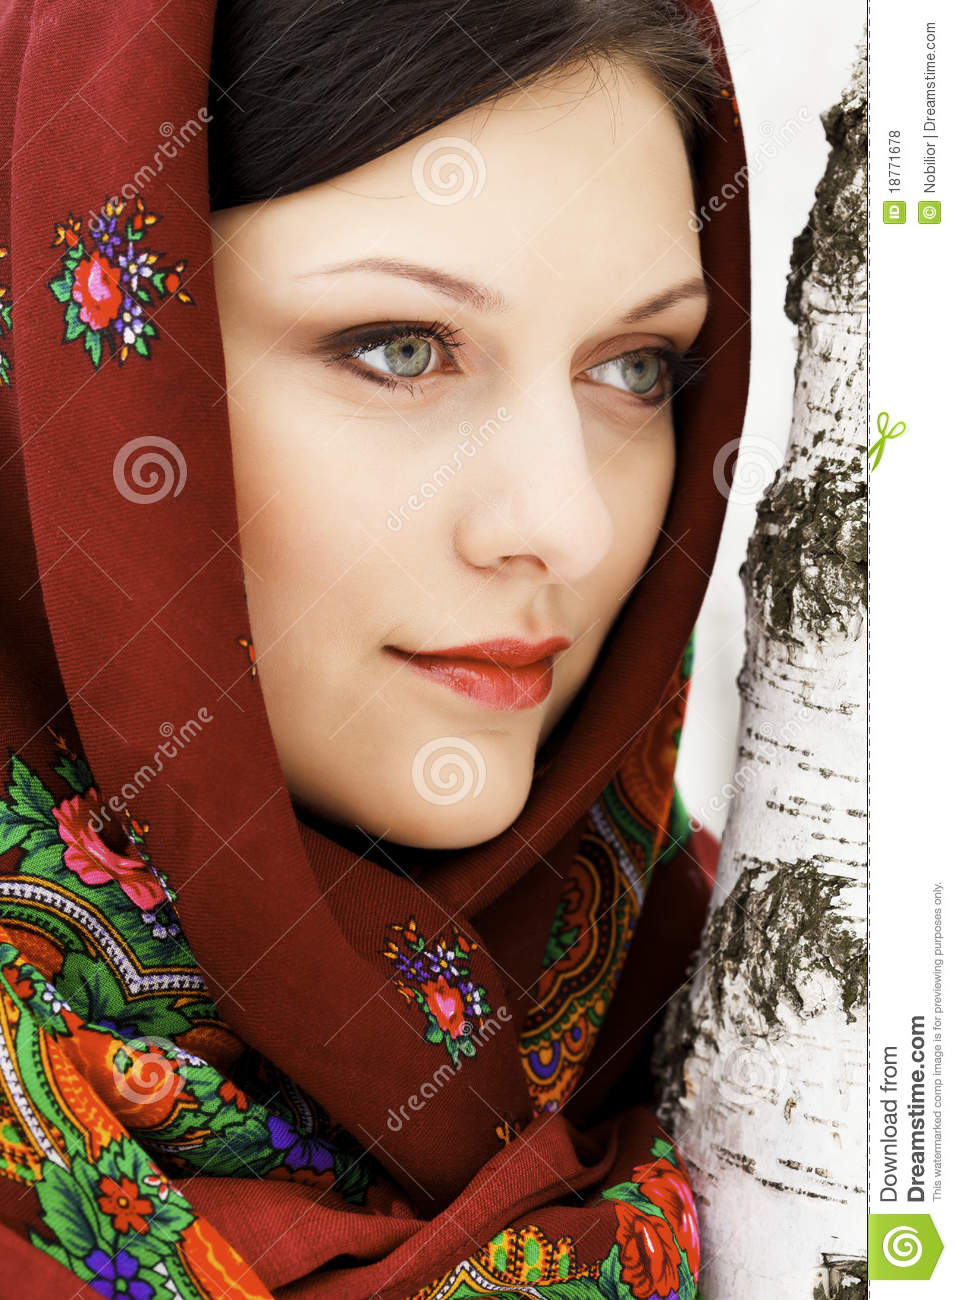 Your Tie Russian Woman 35